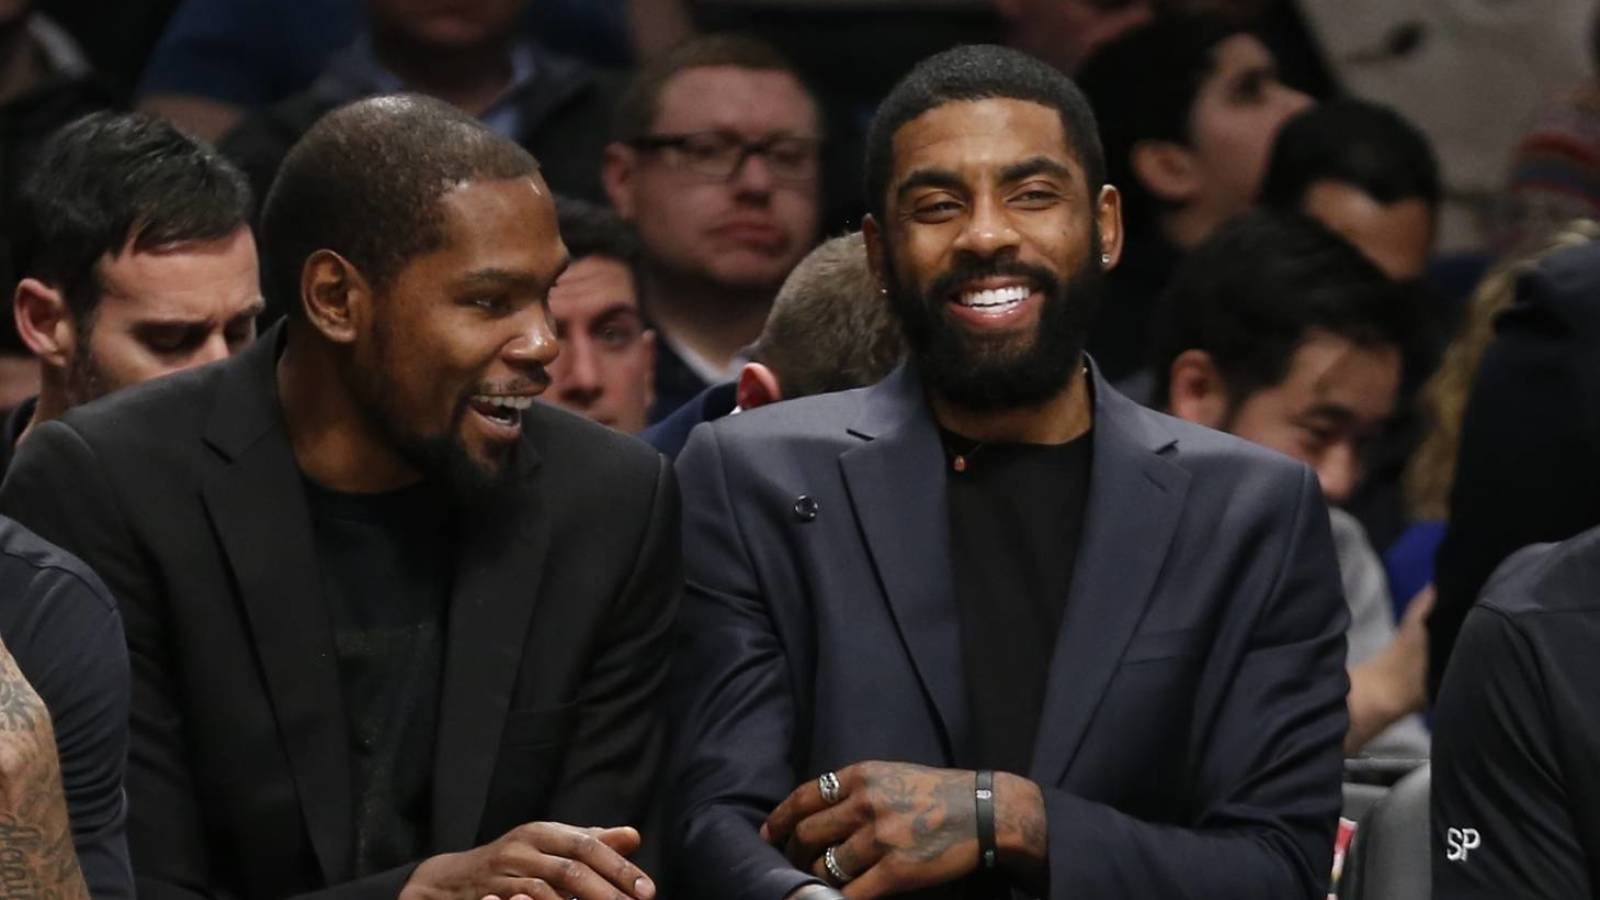 Nets' Kevin Durant, Kyrie Irving won't play vs. Grizzlies